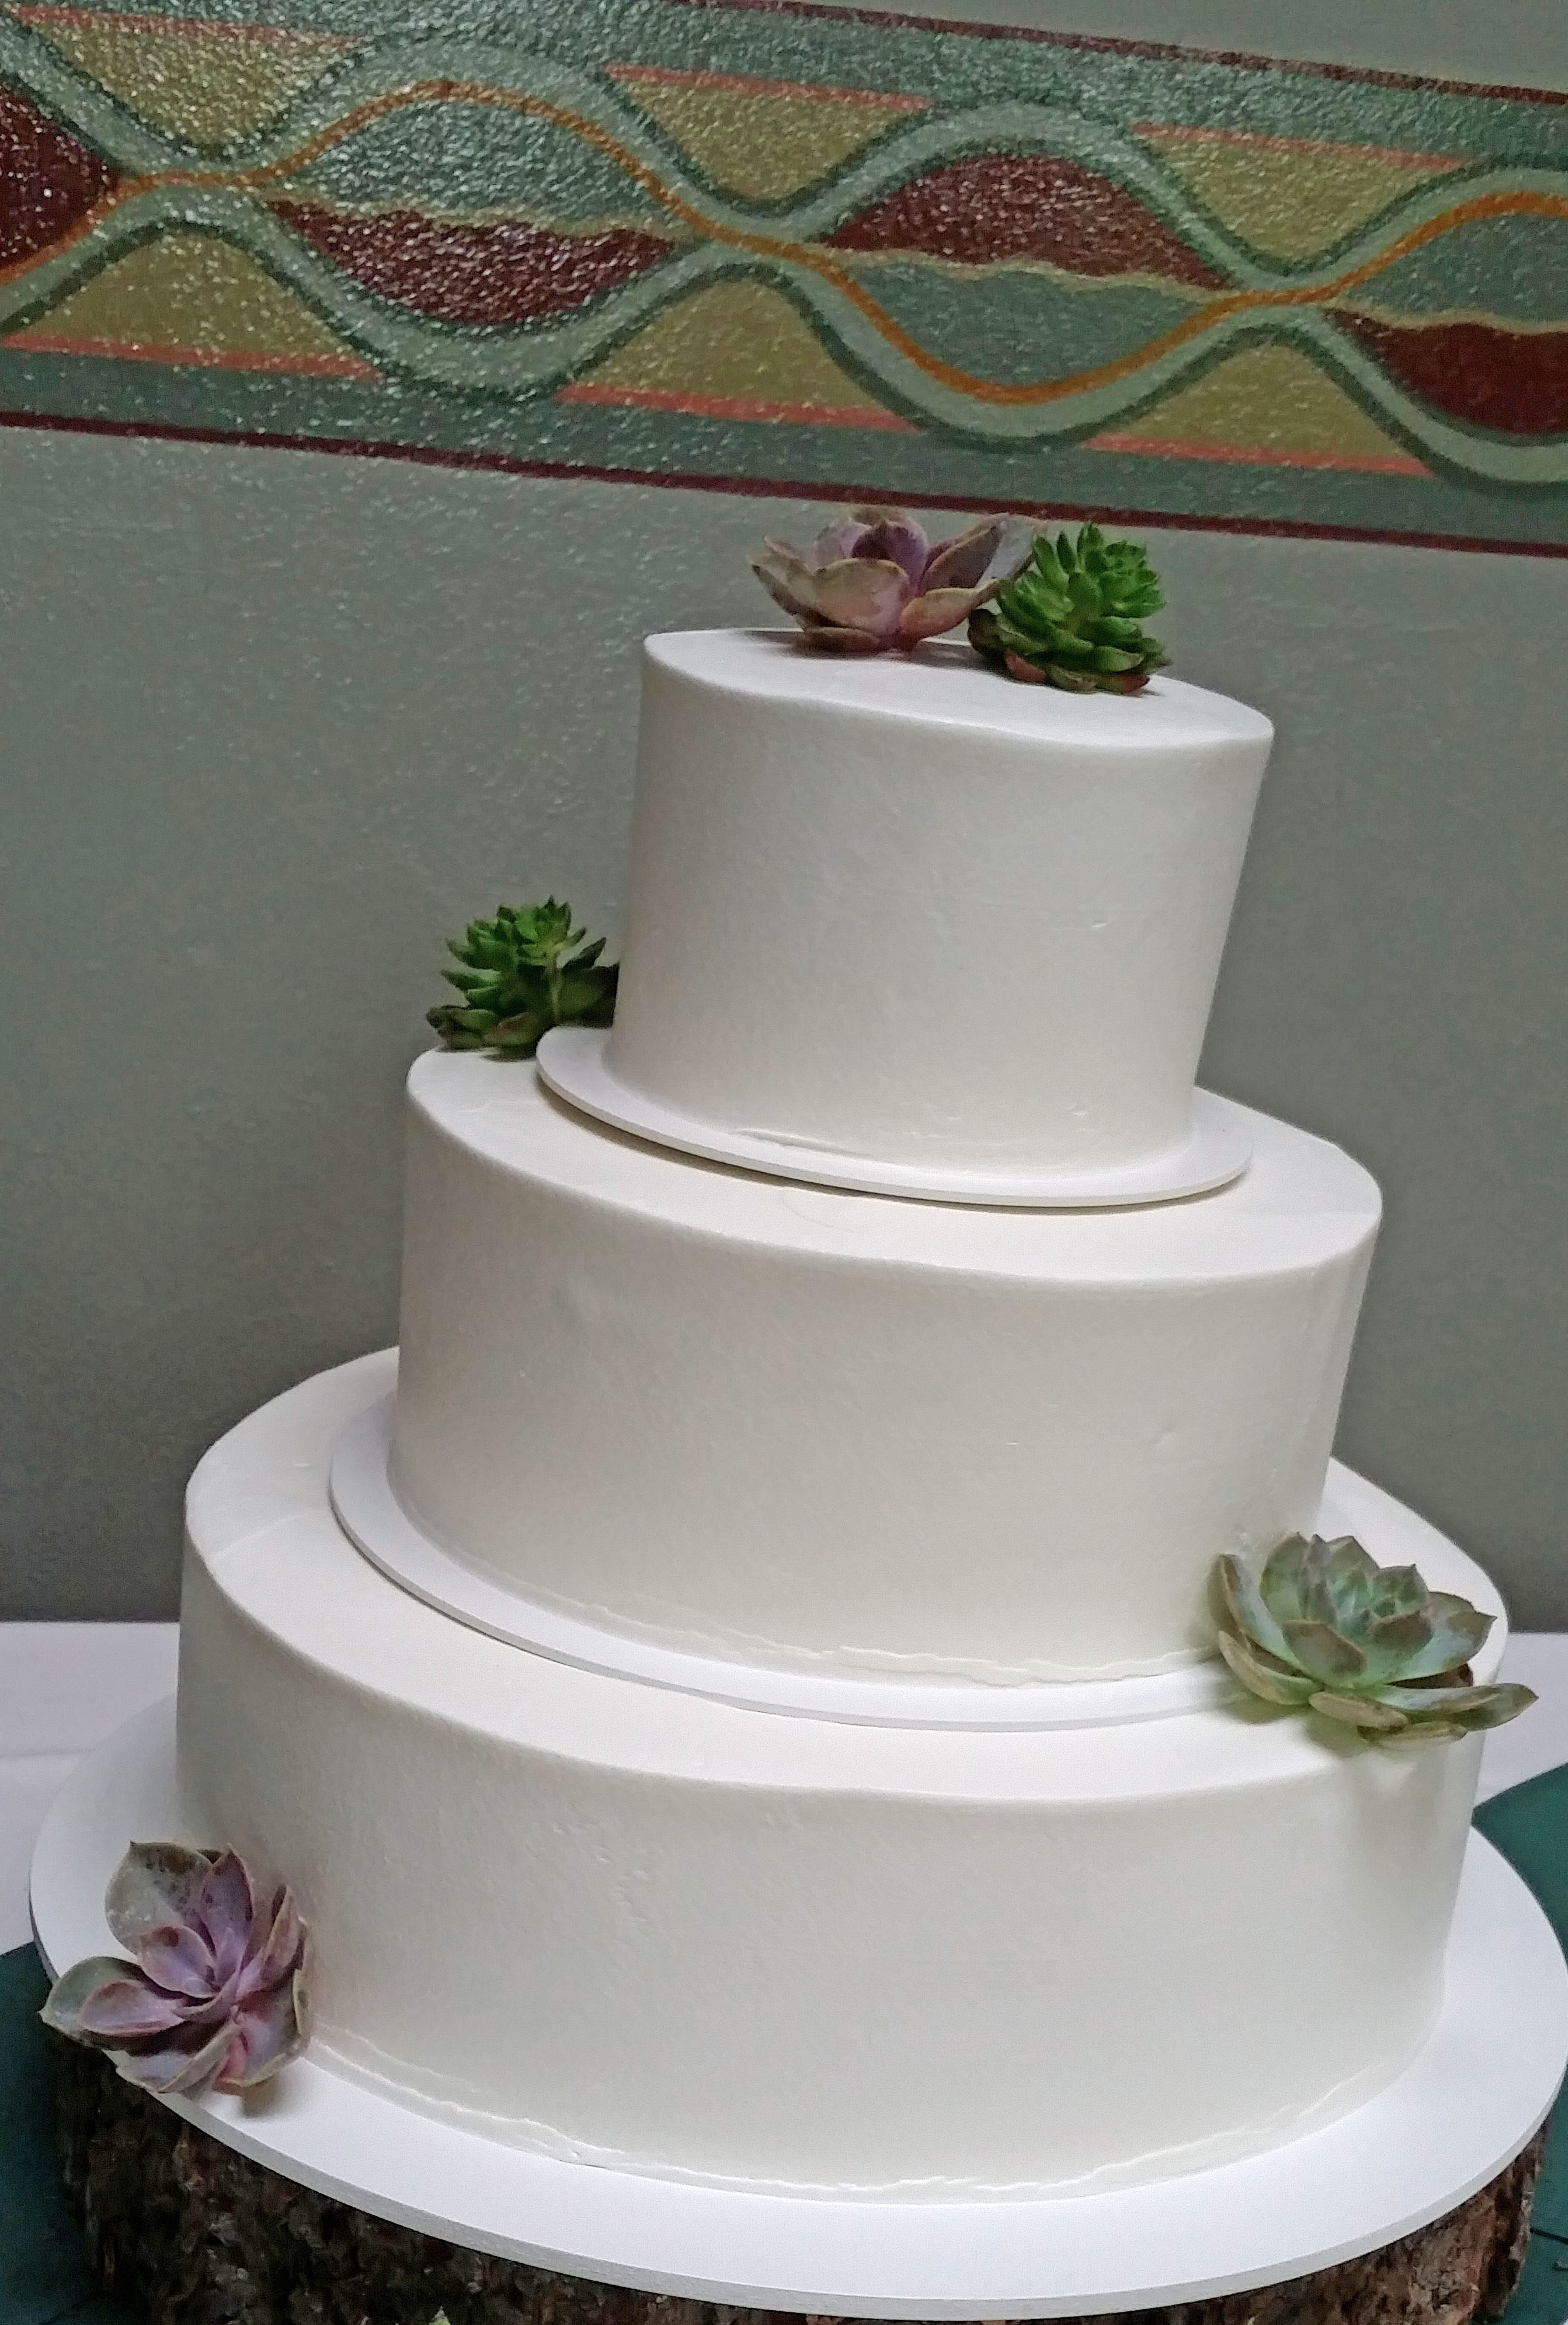 CA0156-Succulents on Wedding Cake